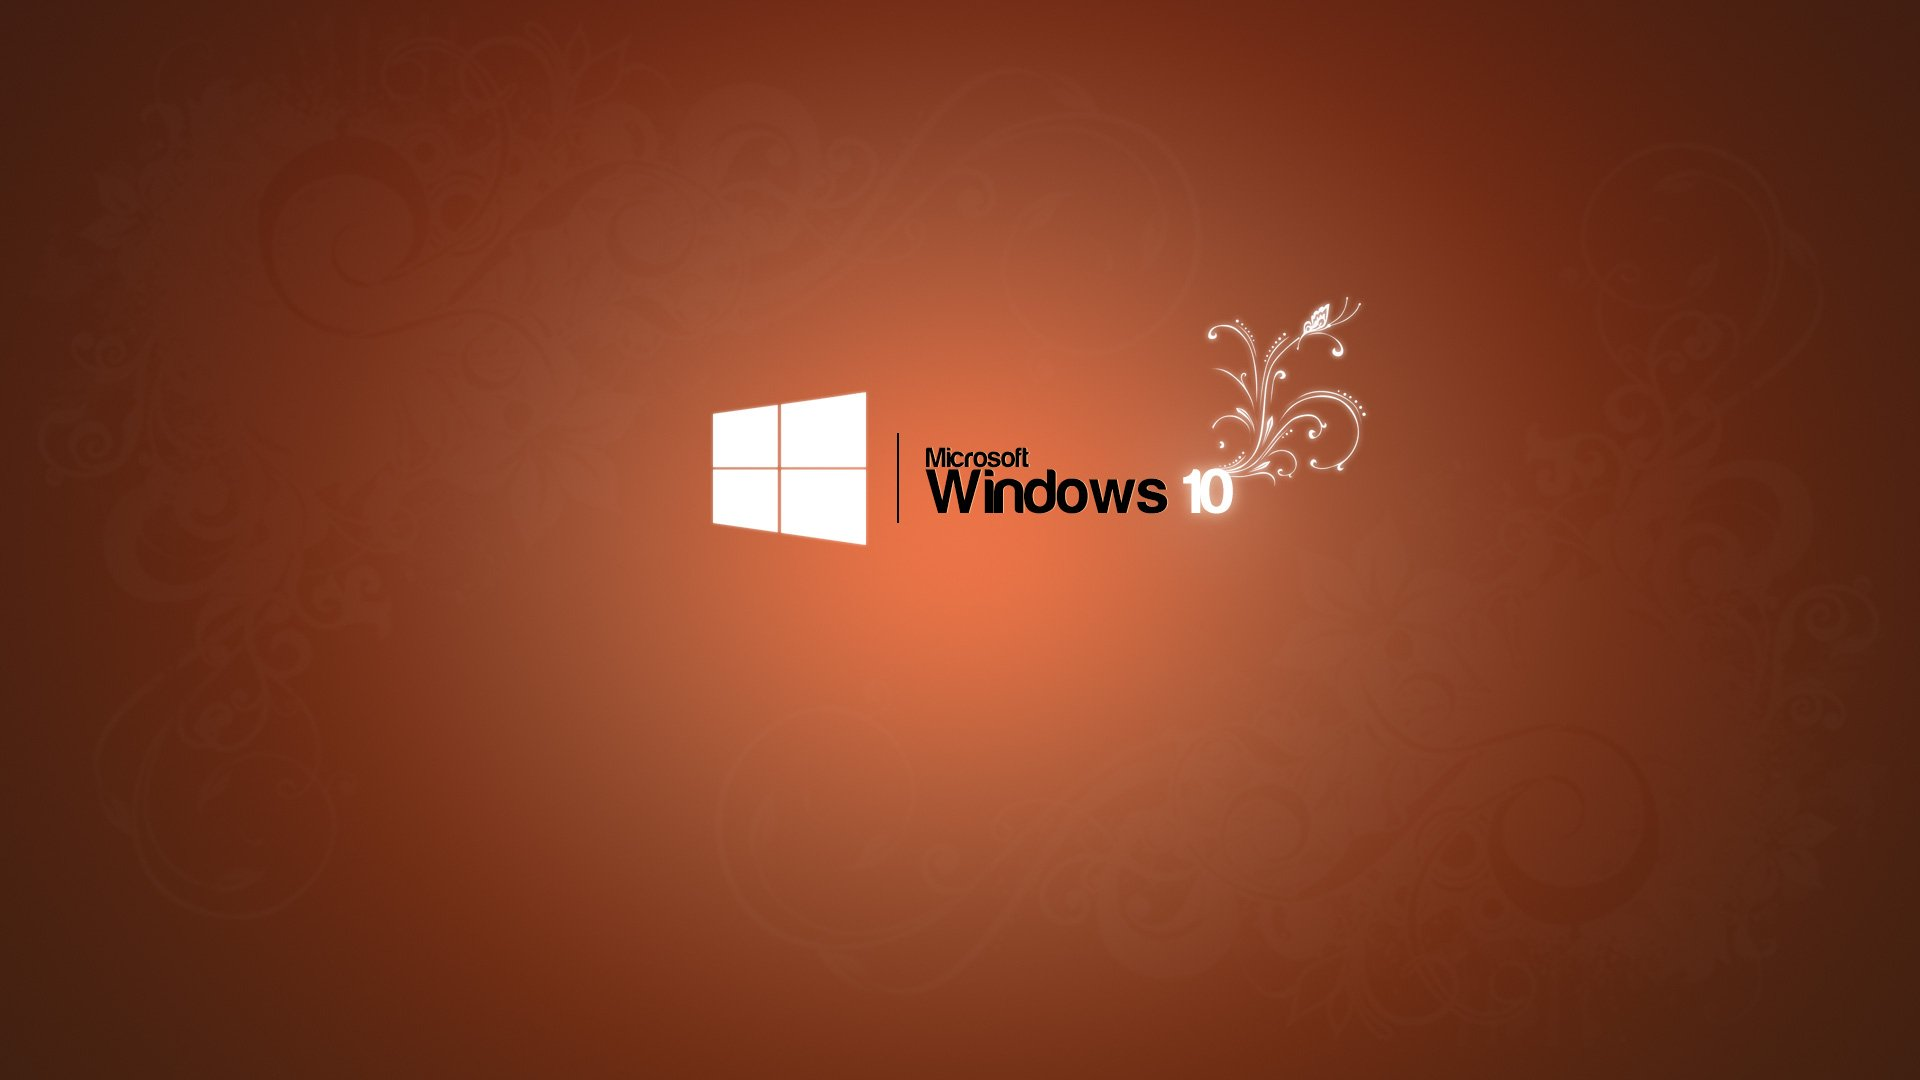 windows 10 cool backgrounds wallpapers 2894 hd wallpapers site